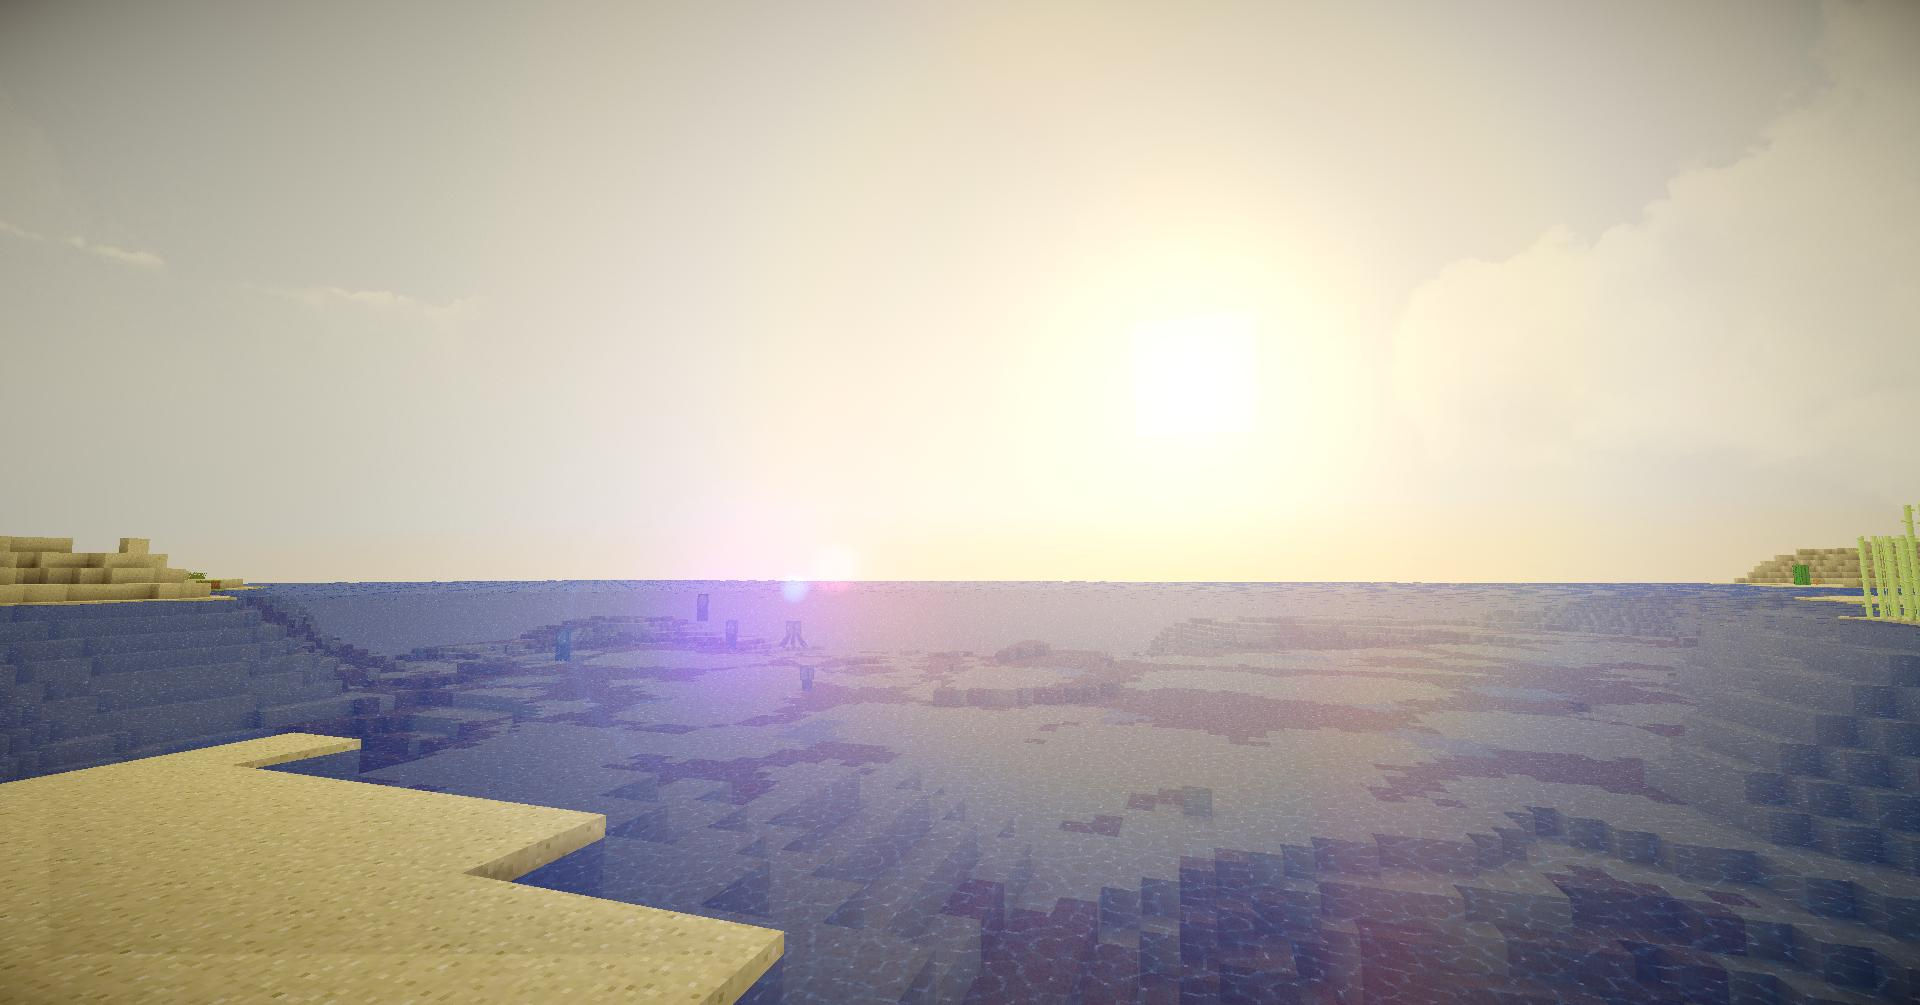 http://minecraft-forum.net/wp-content/uploads/2013/02/49c19__MAC-Shaders-Mod-2.jpg